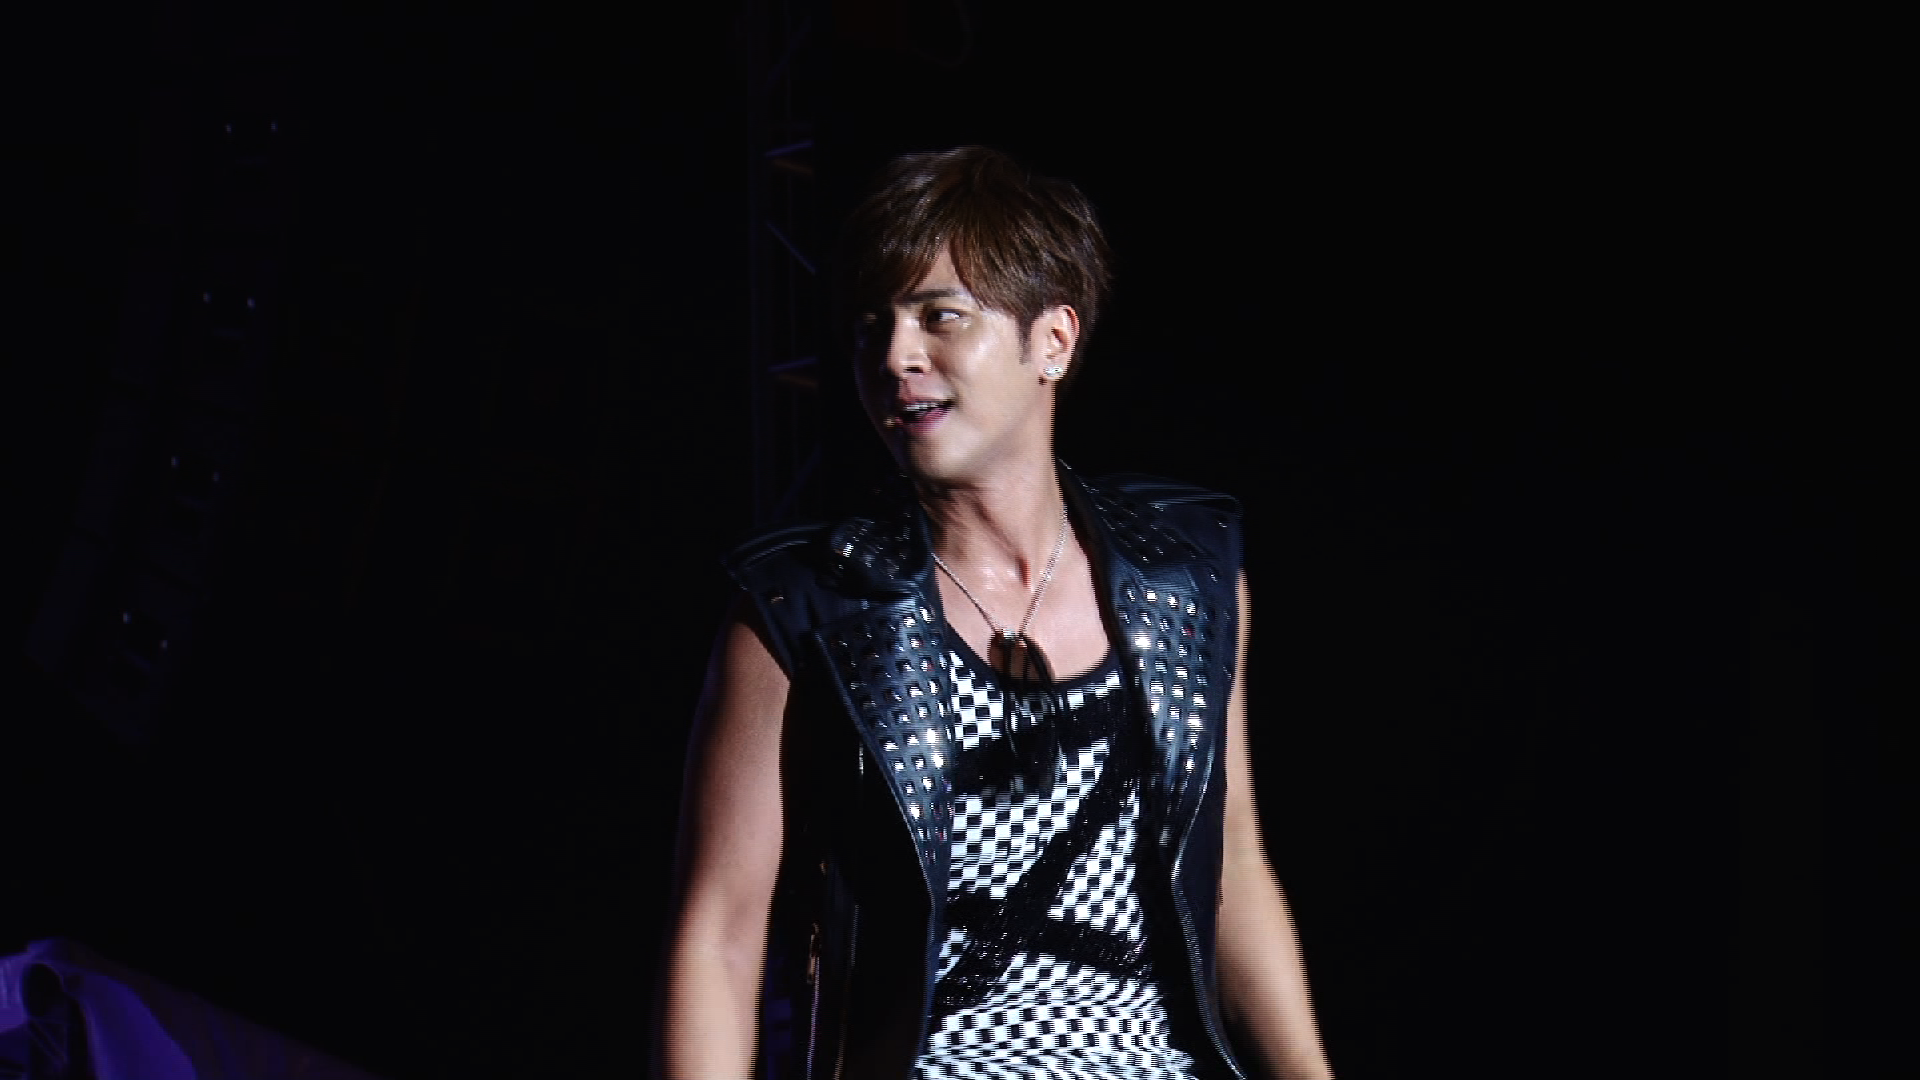 [Concert] Show Luo (羅志祥) – Performance Part 2